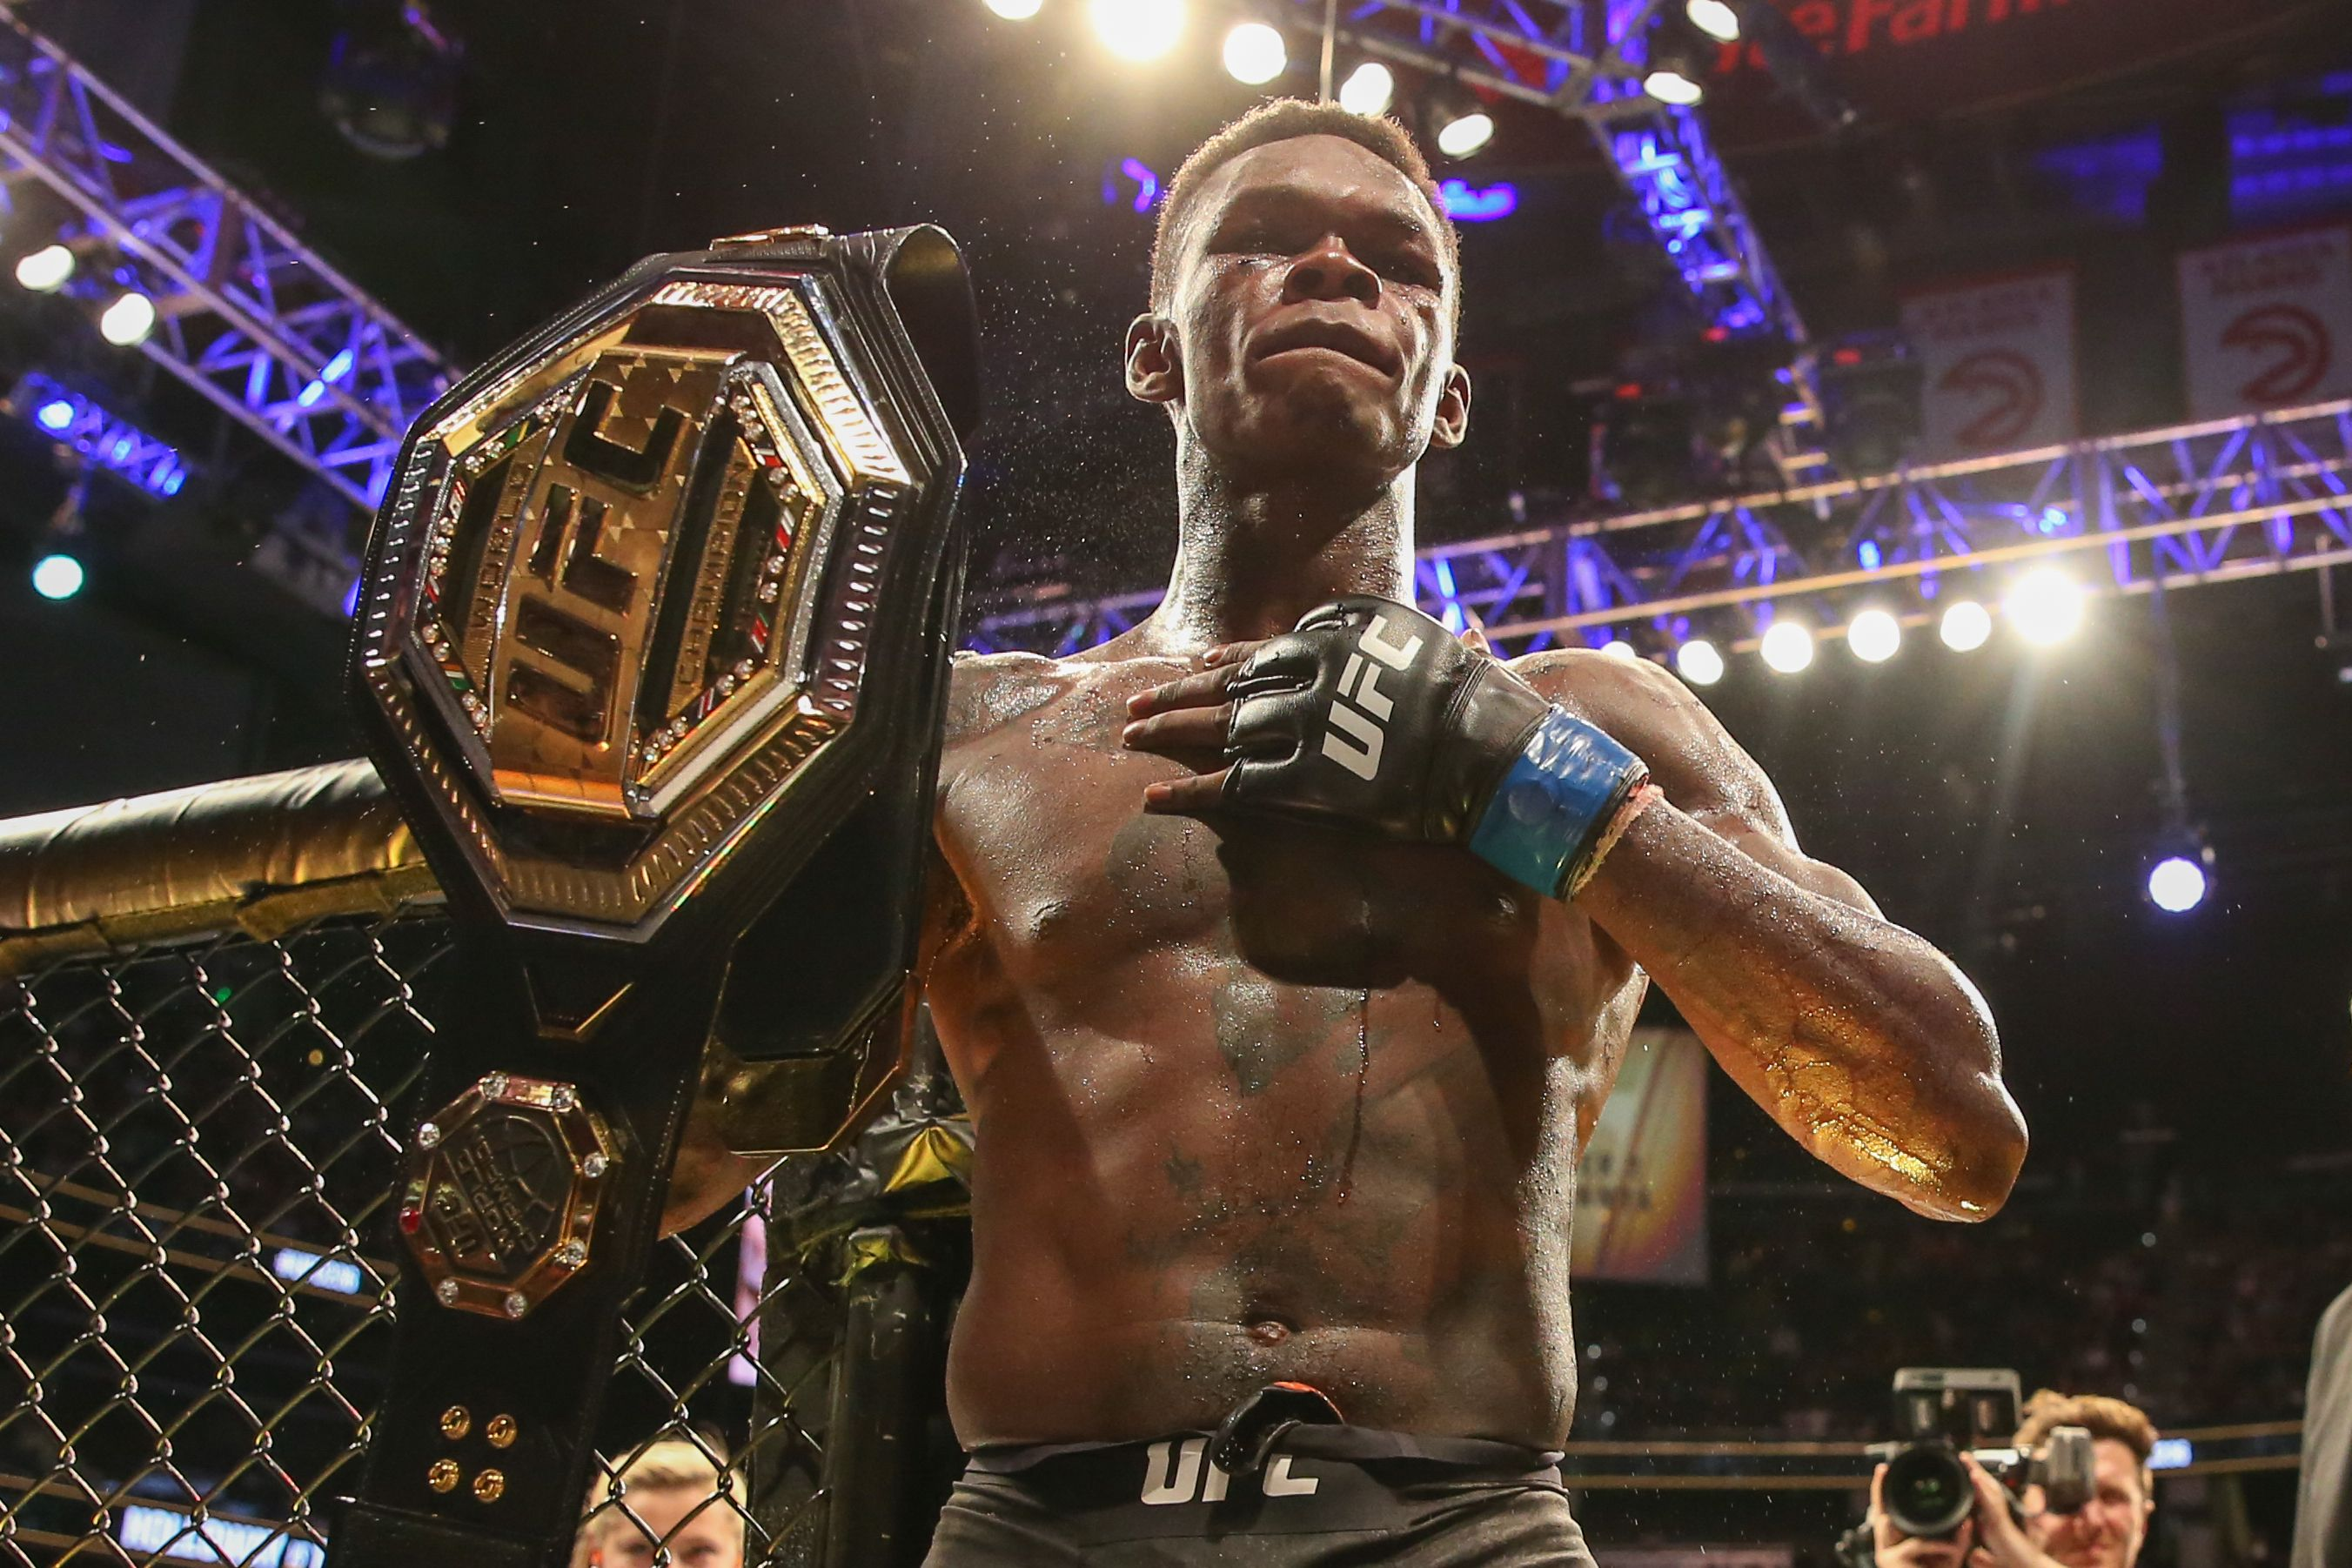 Israel Adesanya to face Paulo Costa at UFC 253, per report